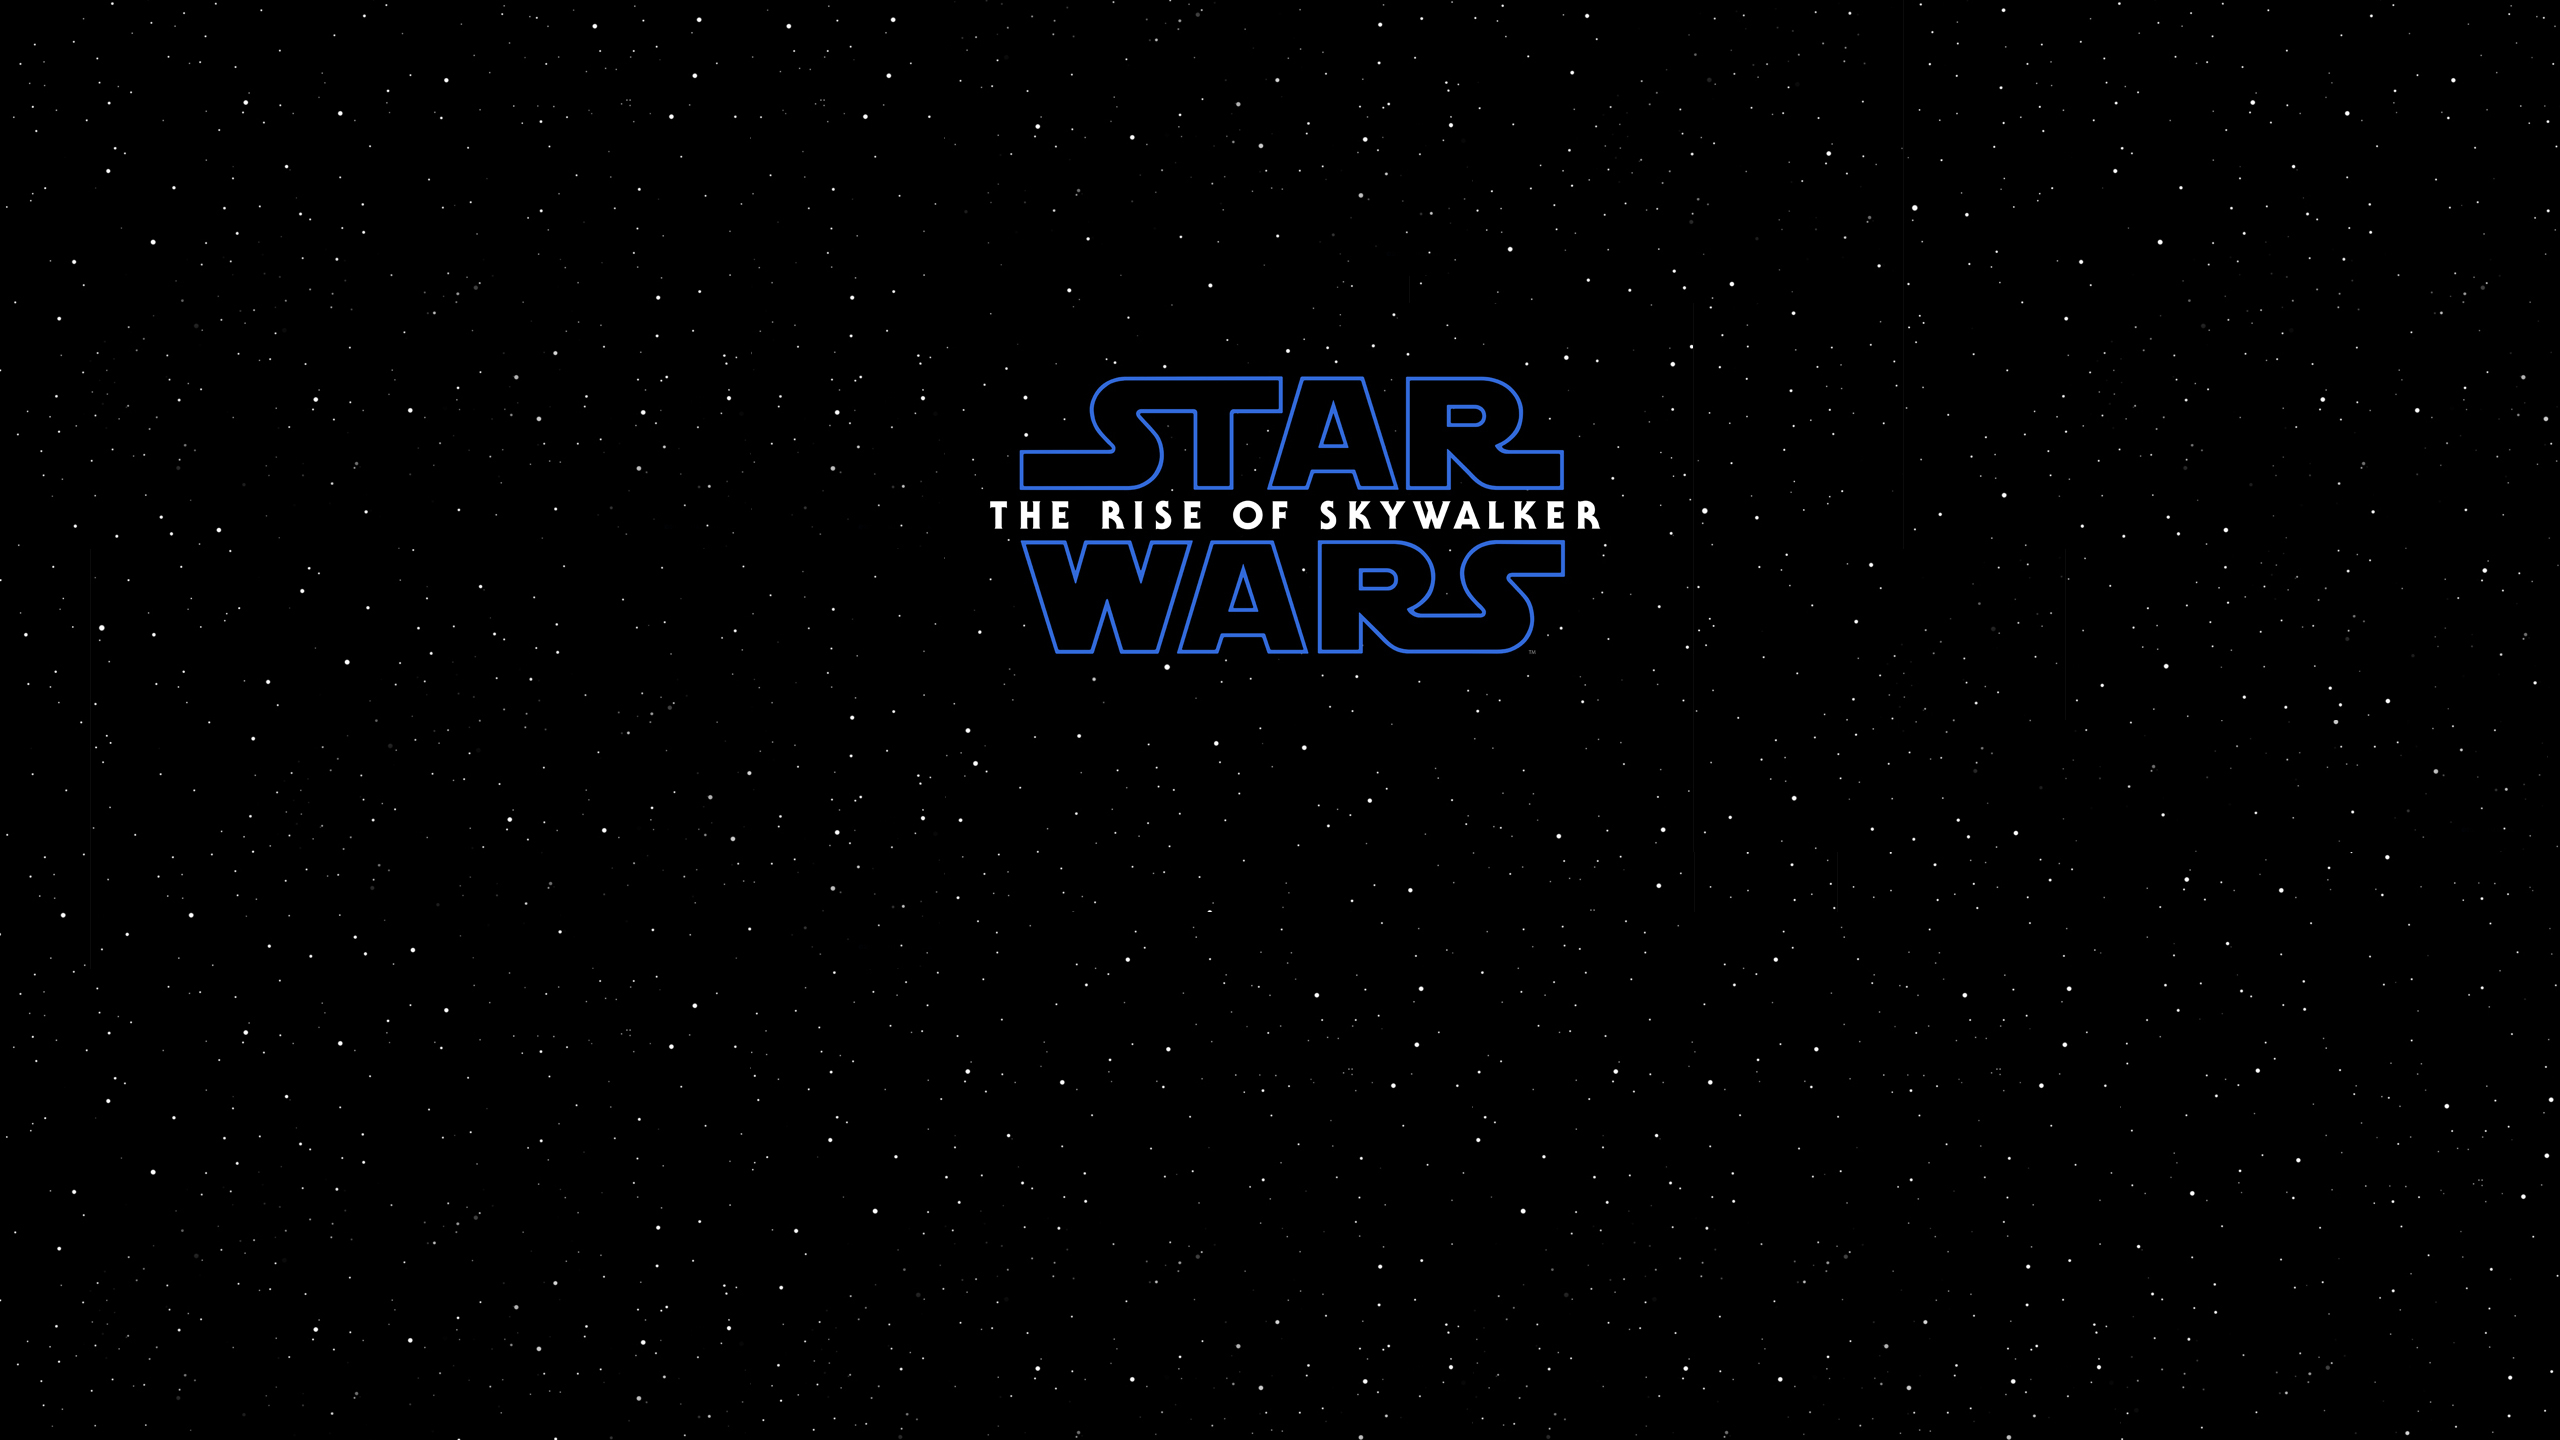 Star Wars The Rise Of Skywalker 2019 Hd Movies 4k Wallpapers Images Backgrounds Photos And Pictures